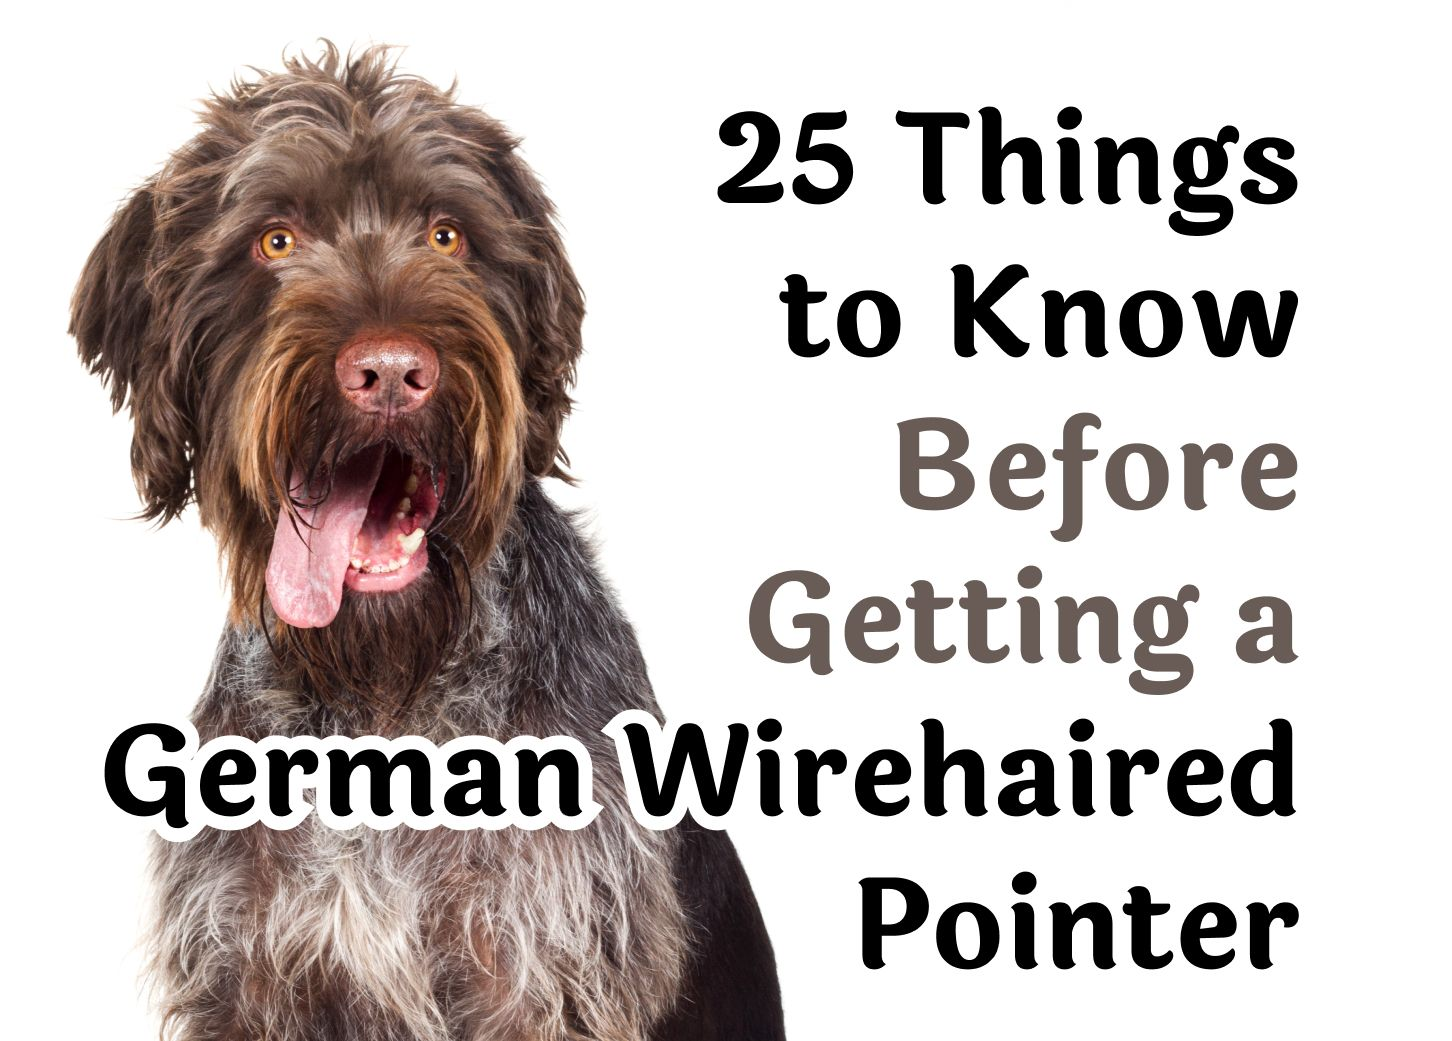 Questions You Should Consider Before Getting A German Wirehaired Pointer